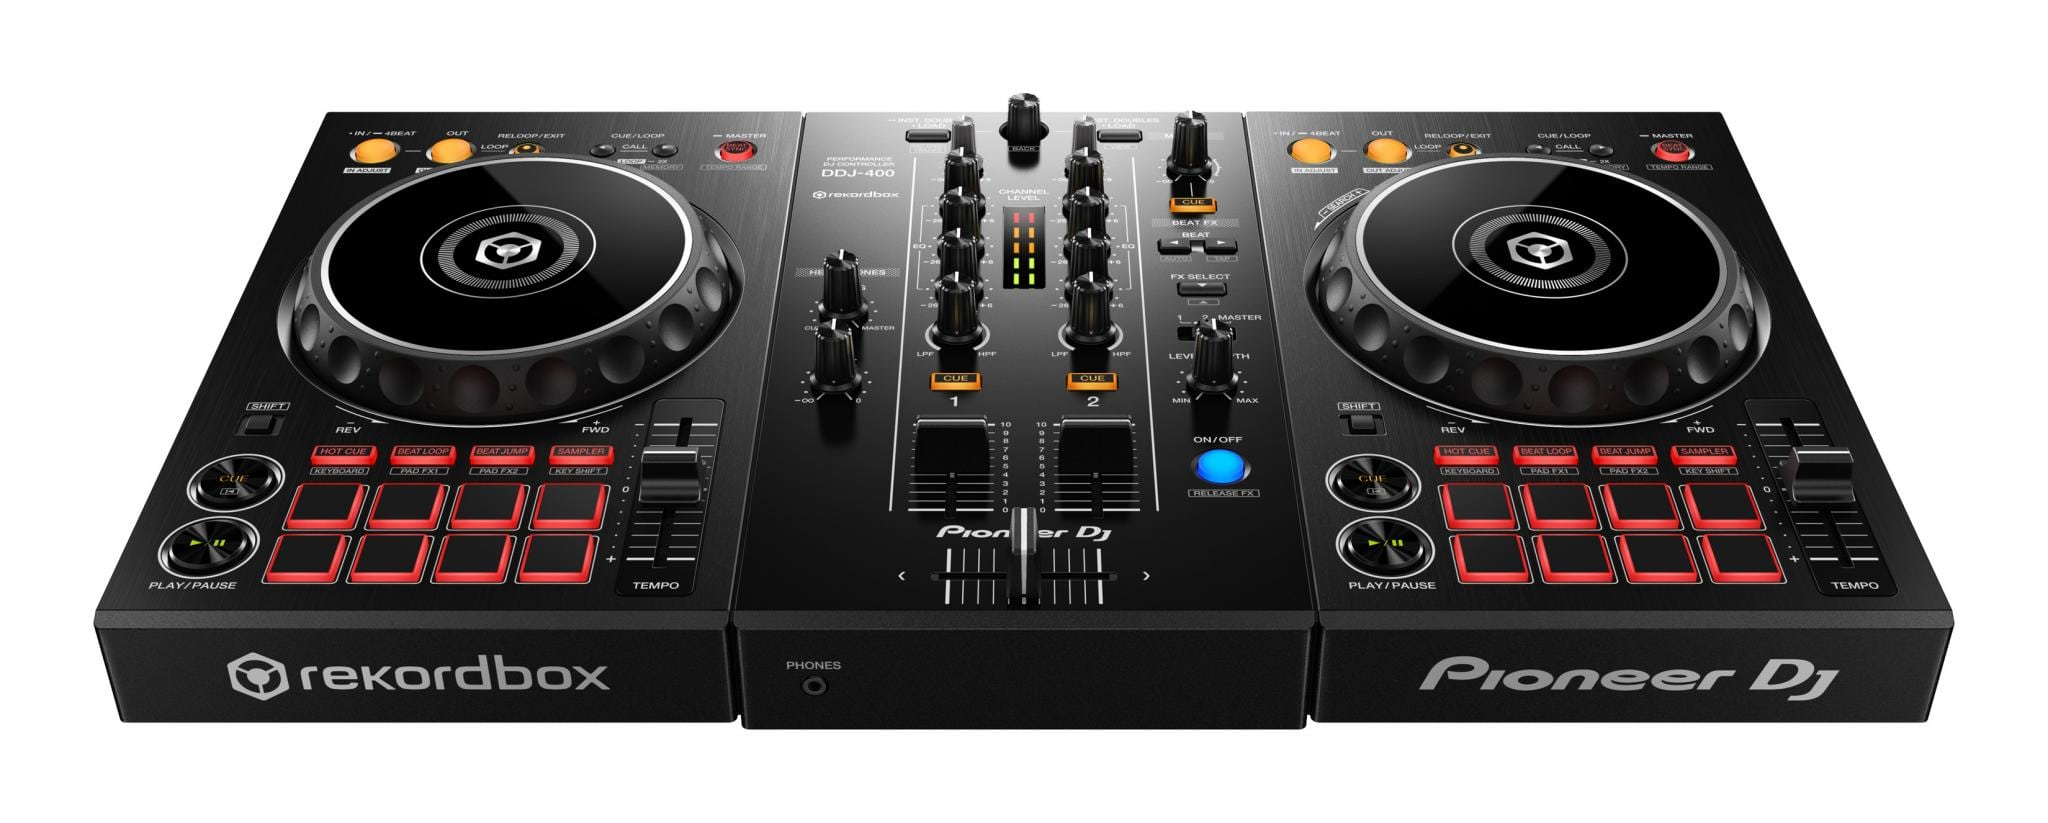 NEW: Pioneer DJ DDJ-400 — the rekordbox beginner's box | DJWORX